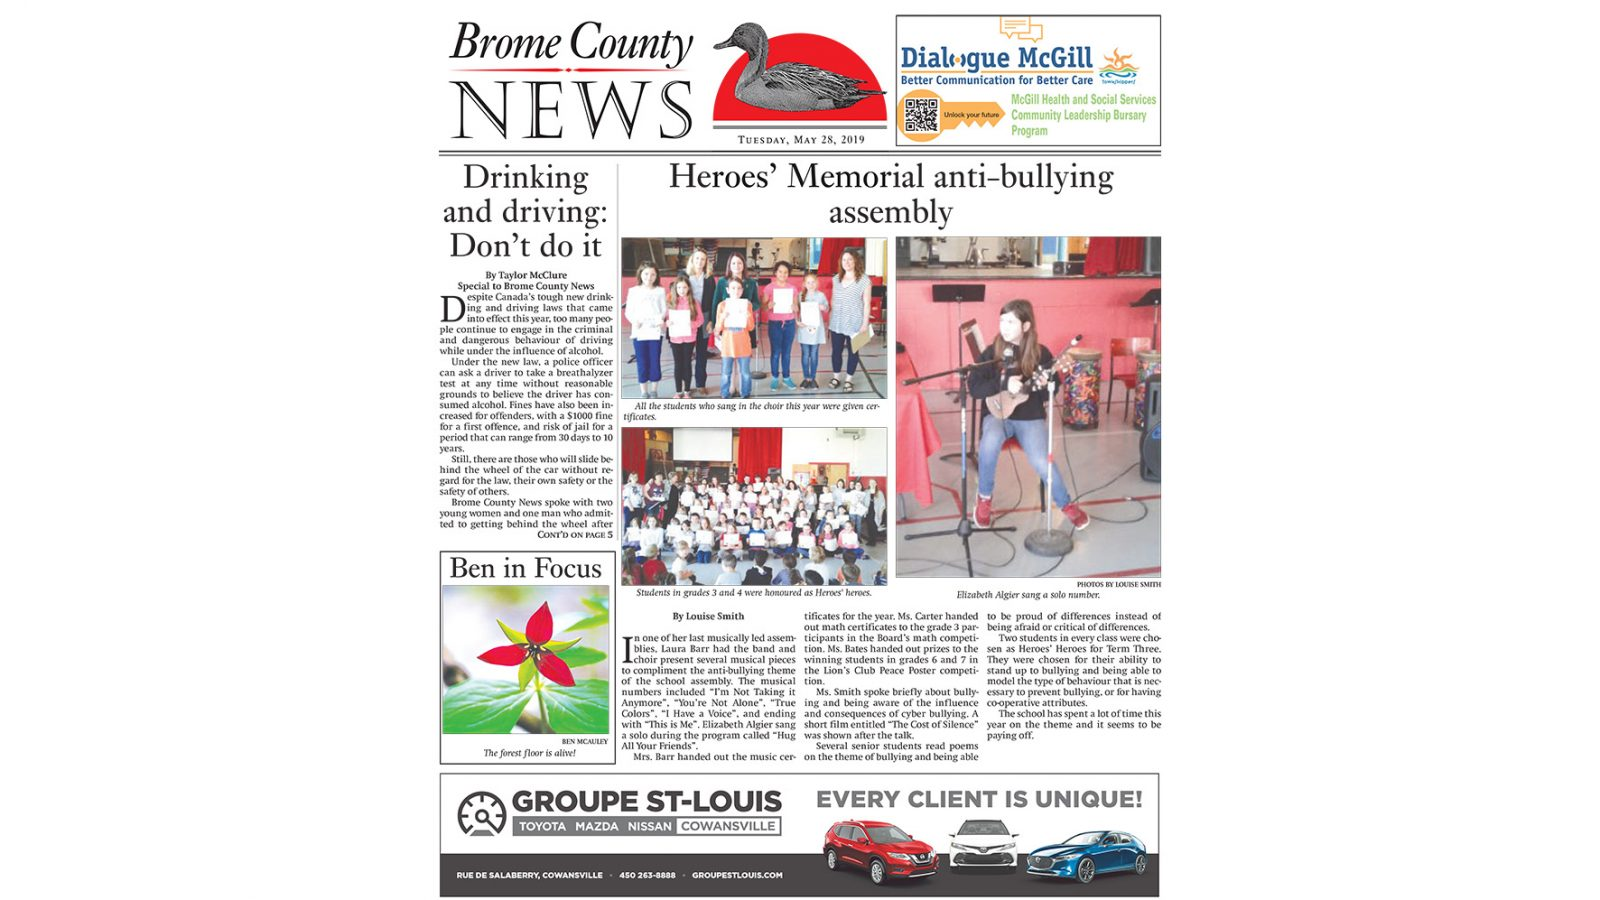 Brome County News – May 28, 2019 edition